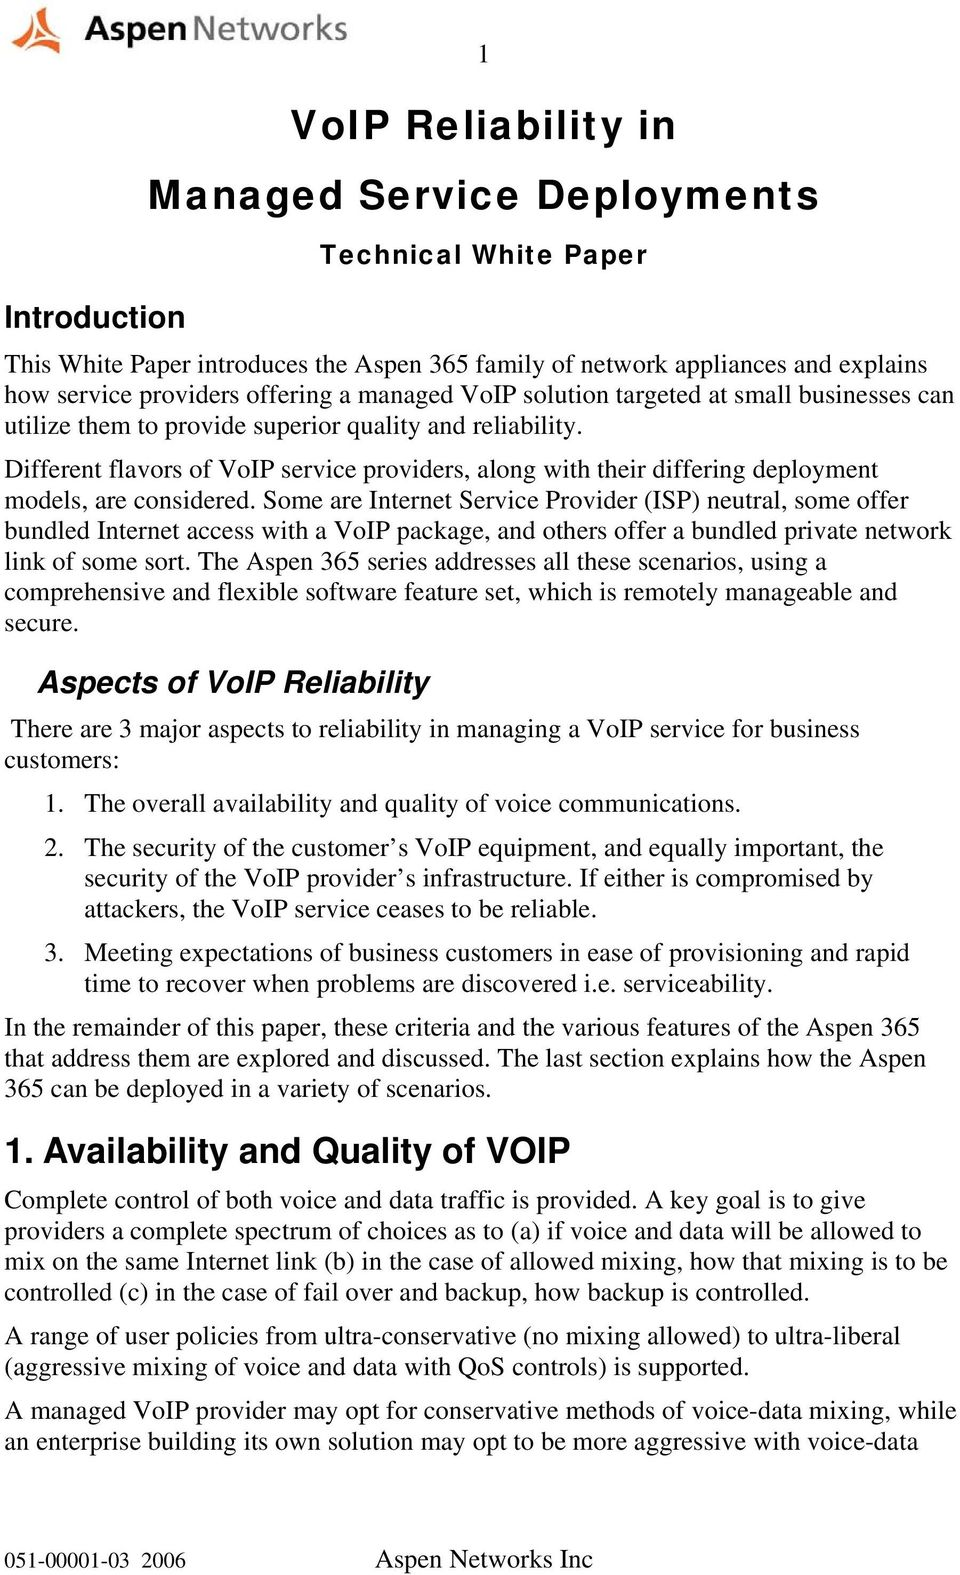 Different flavors of VoIP service providers, along with their differing deployment models, are considered.